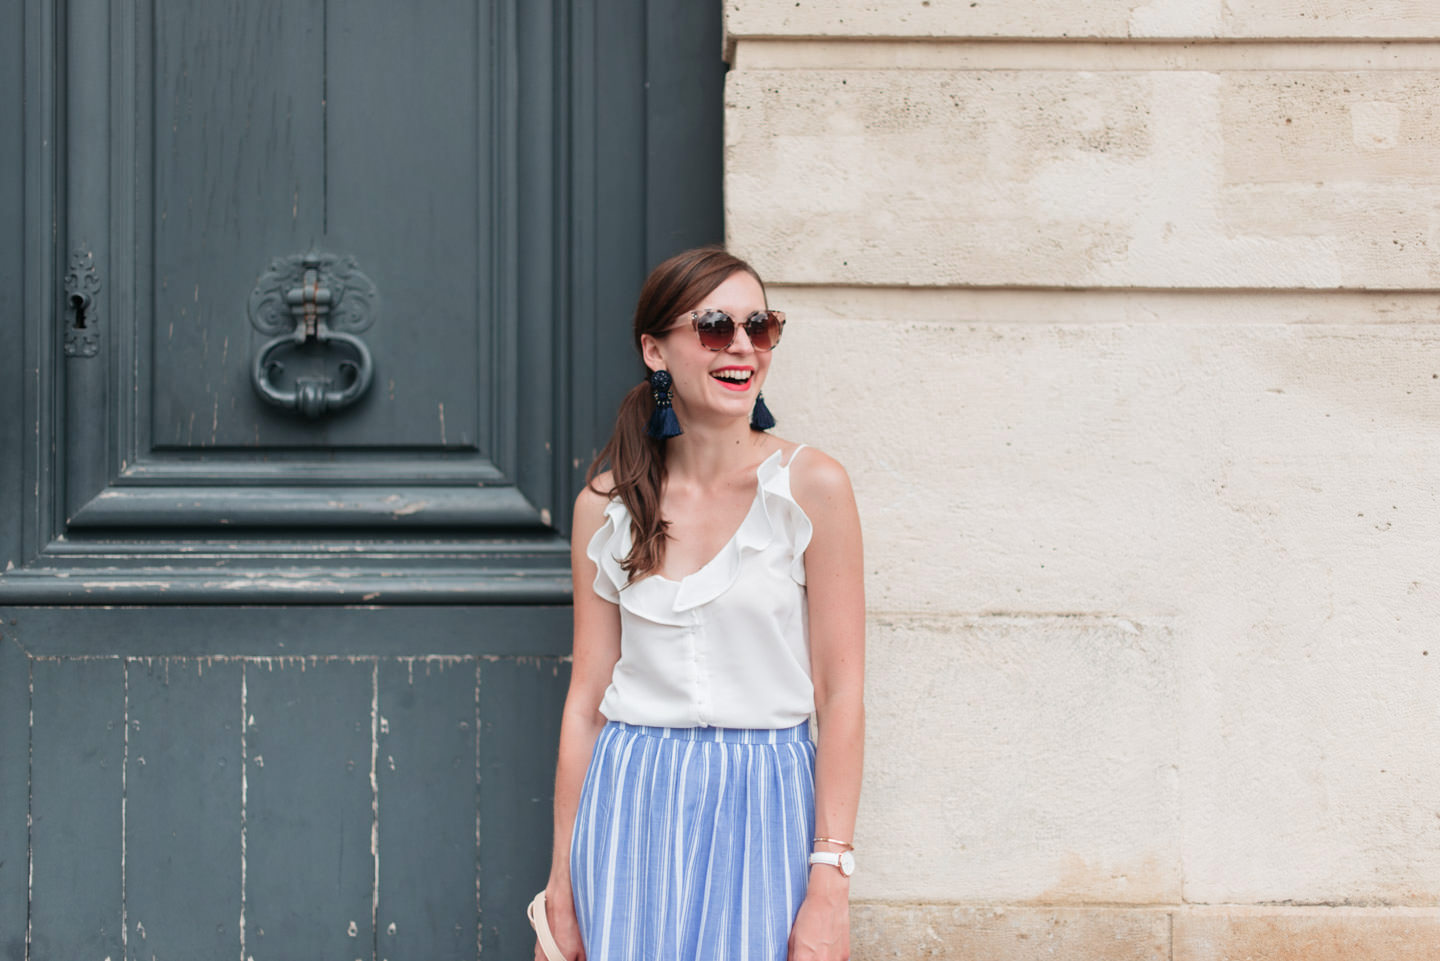 Blog-Mode-And-The-City-Looks-l-ete-en-jupe-longue-4